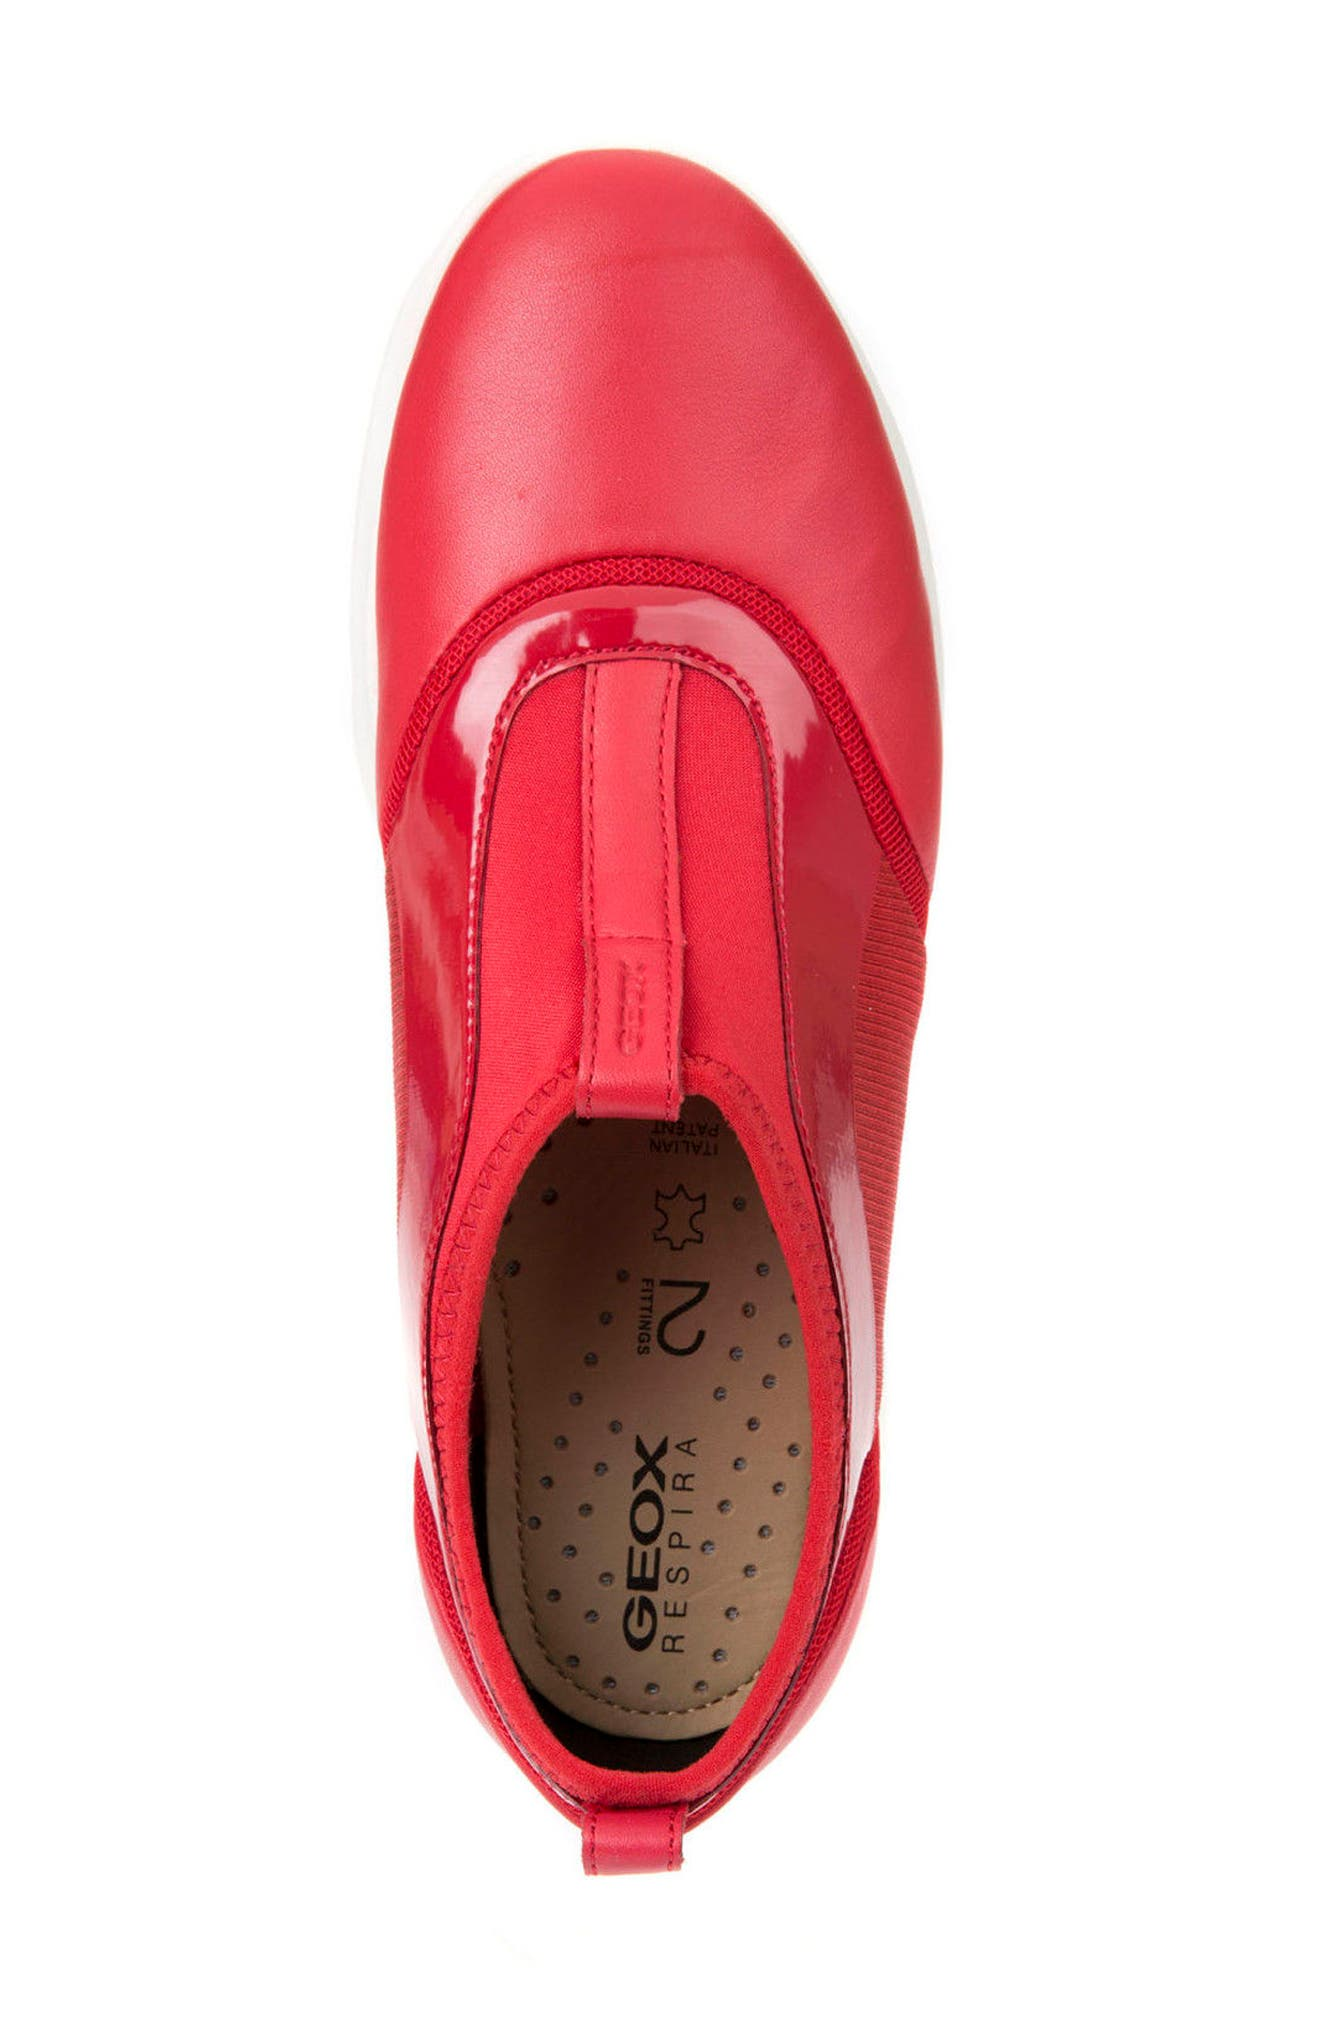 Nebula S Slip-On Sneaker,                             Alternate thumbnail 4, color,                             Red Leather